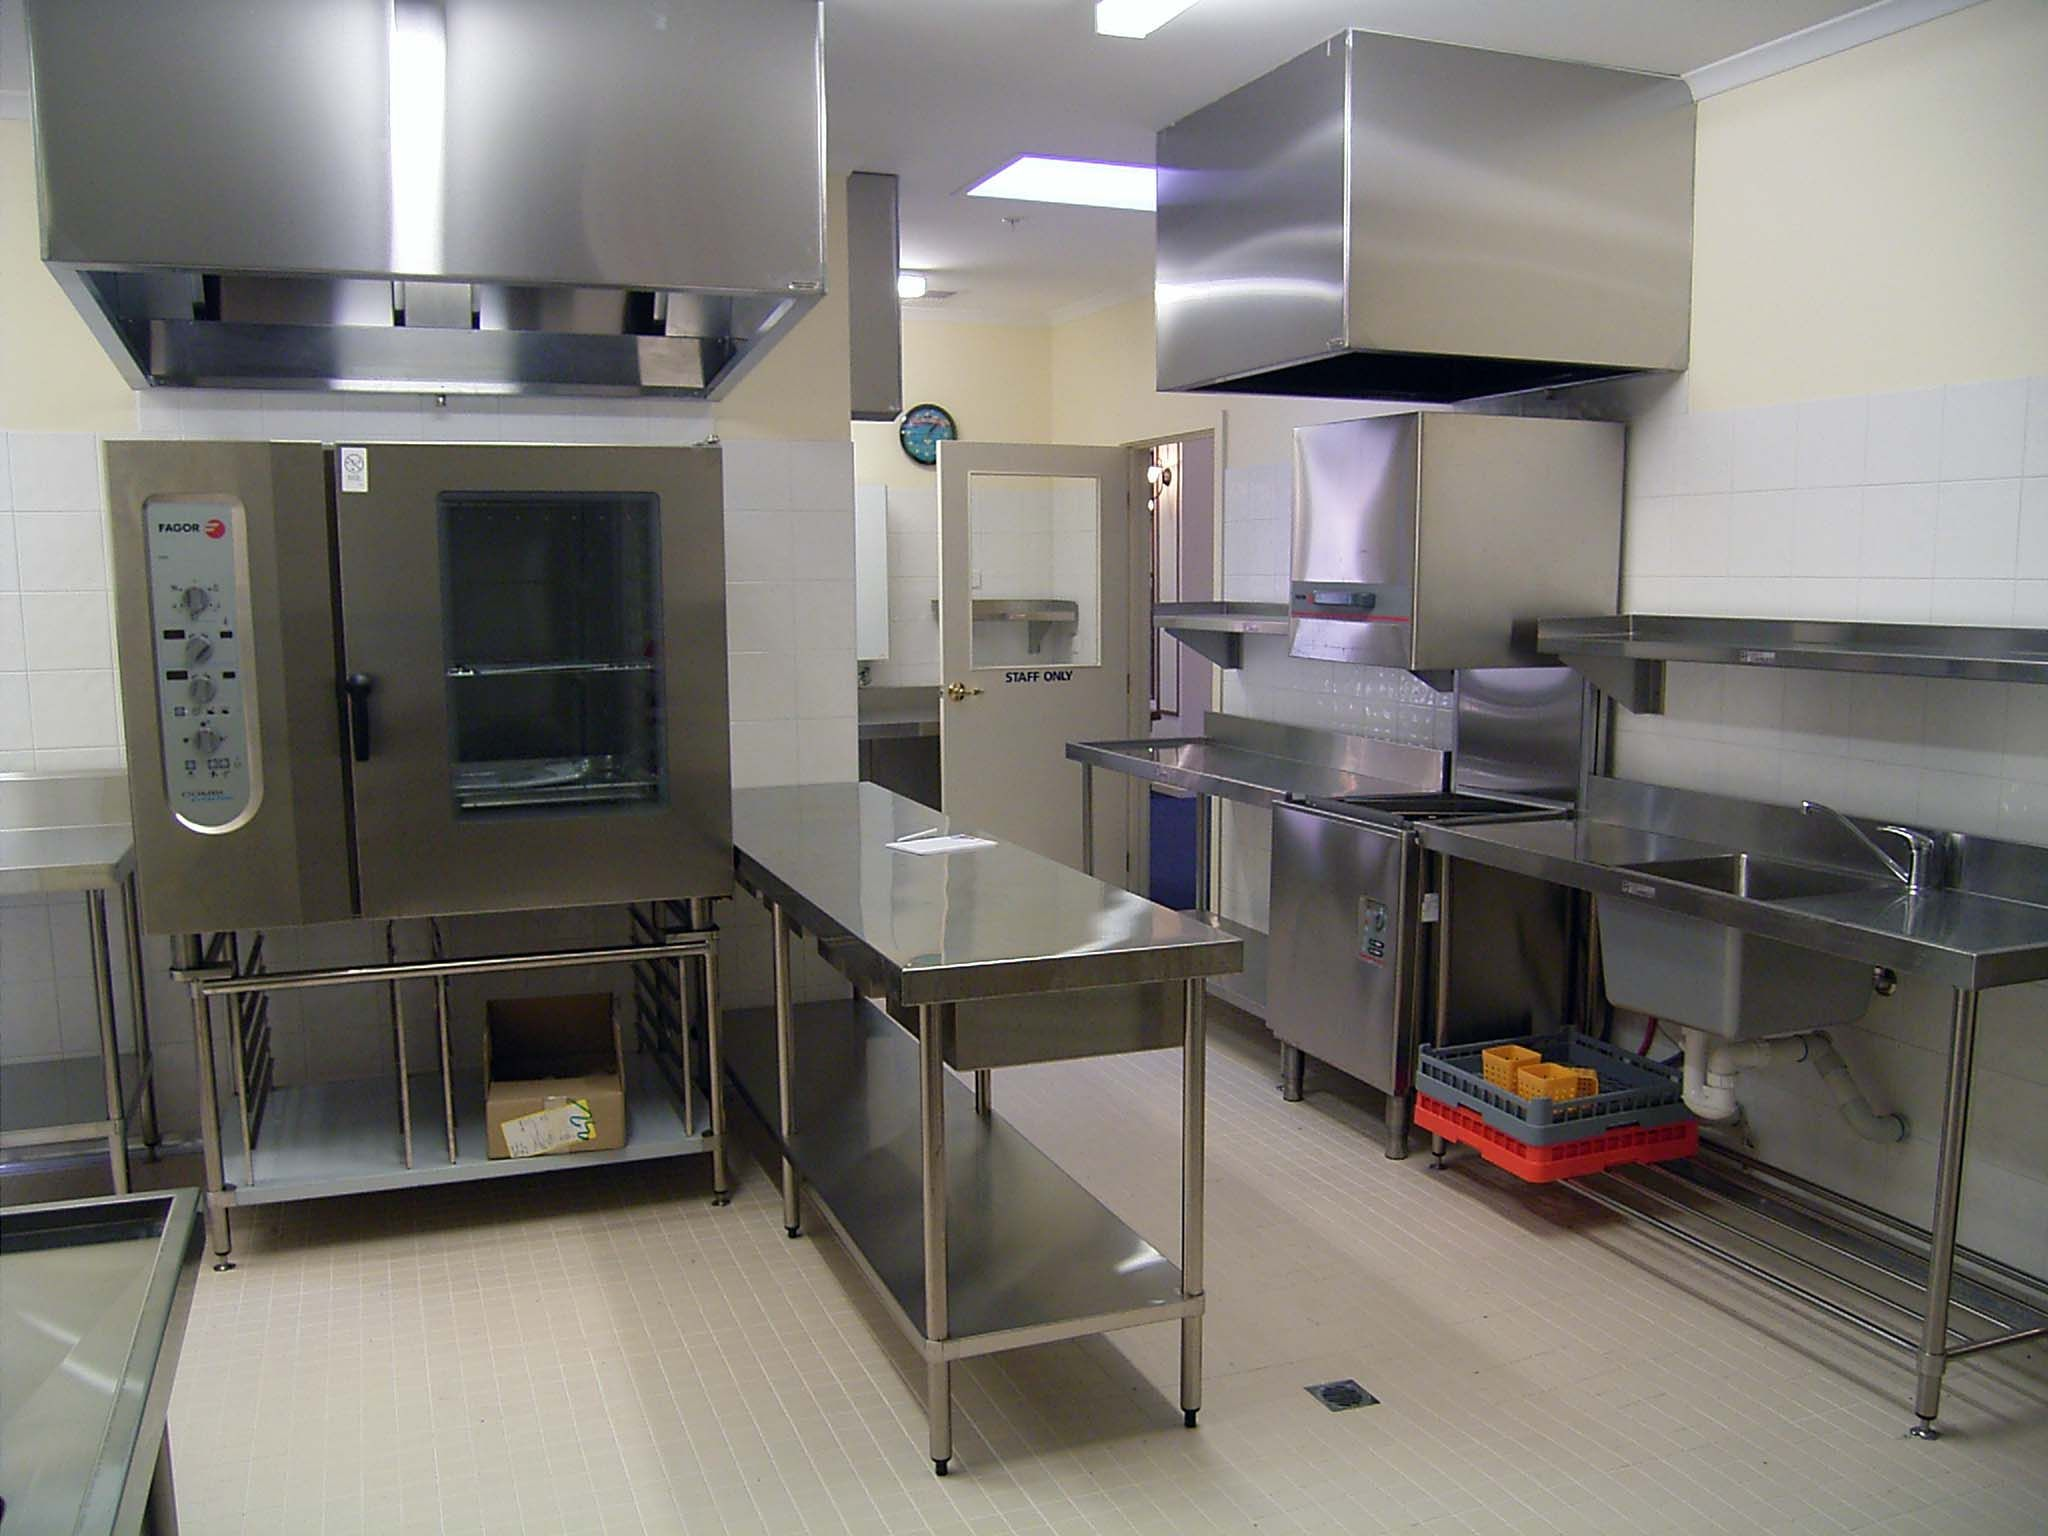 About Commercial Kitchen Design Source Googlecompk What Began - Commercial kitchen design ideas